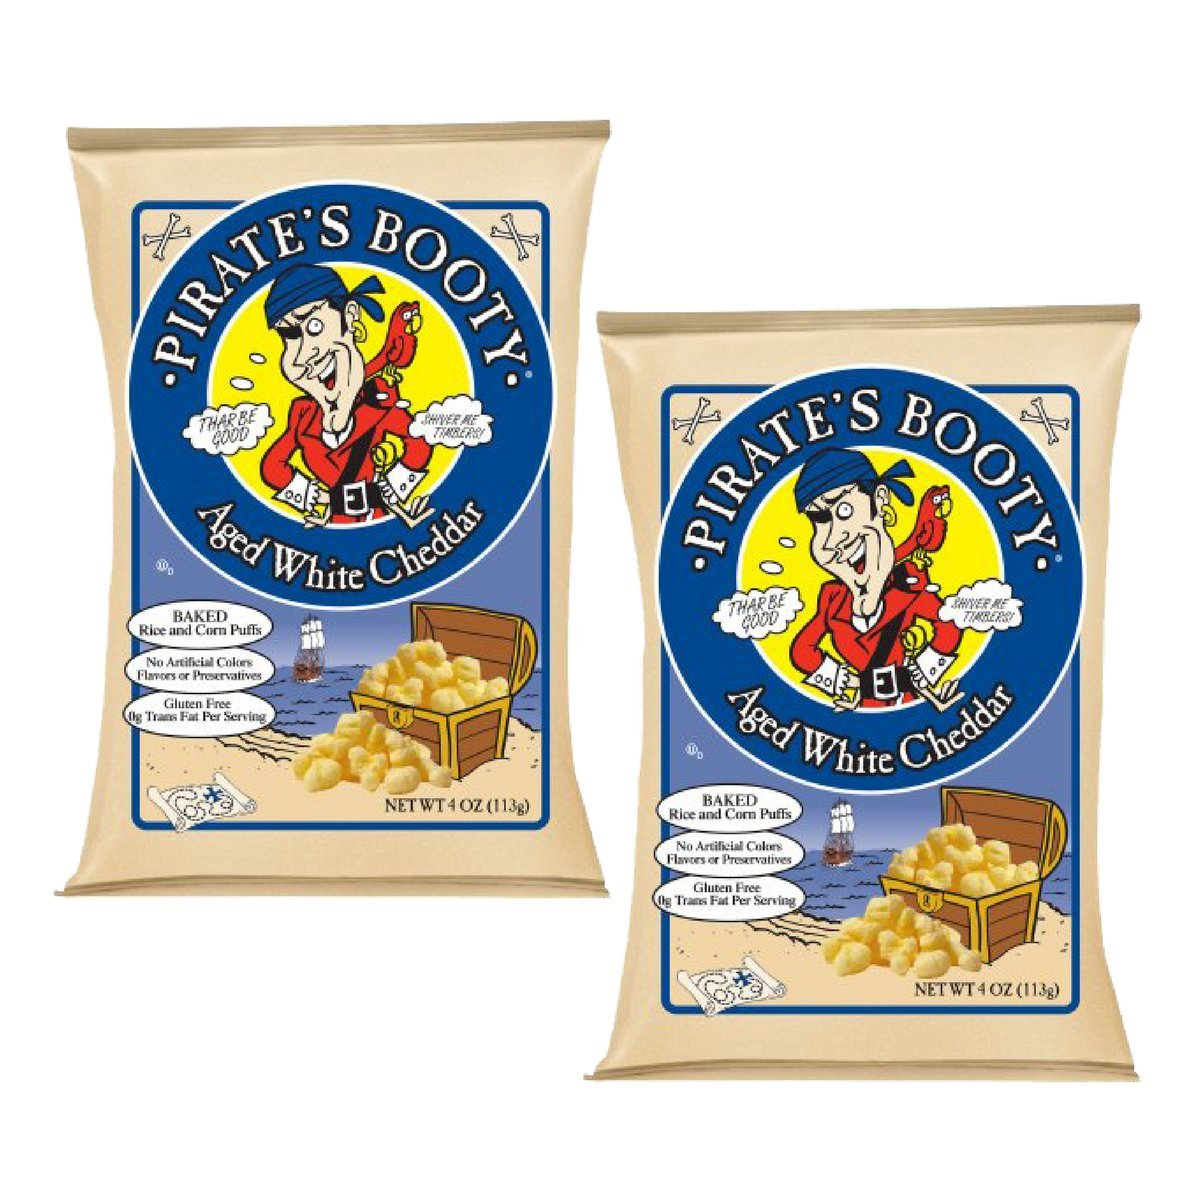 Pirate's Booty, Aged White Cheddar, 4-Ounce Bags (Pack of 2) by Pirate's Booty